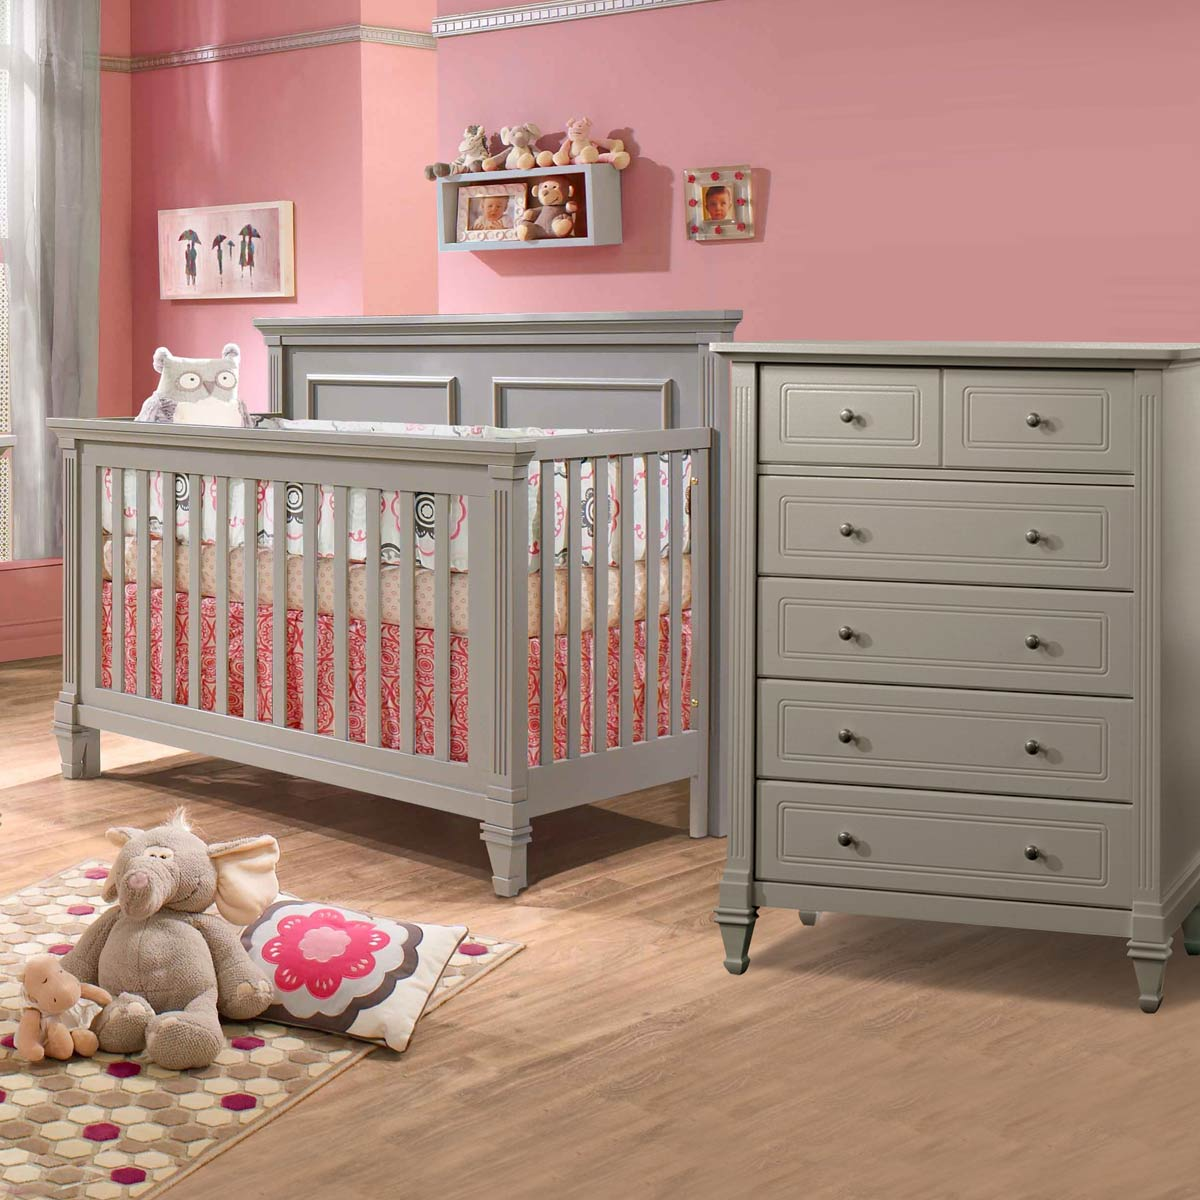 Natart crib for sale - Natart Belmont 2 Piece Nursery Set 4 In 1 Convertible Crib And 5 Drawer Dresser In Stone Gray Free Shipping